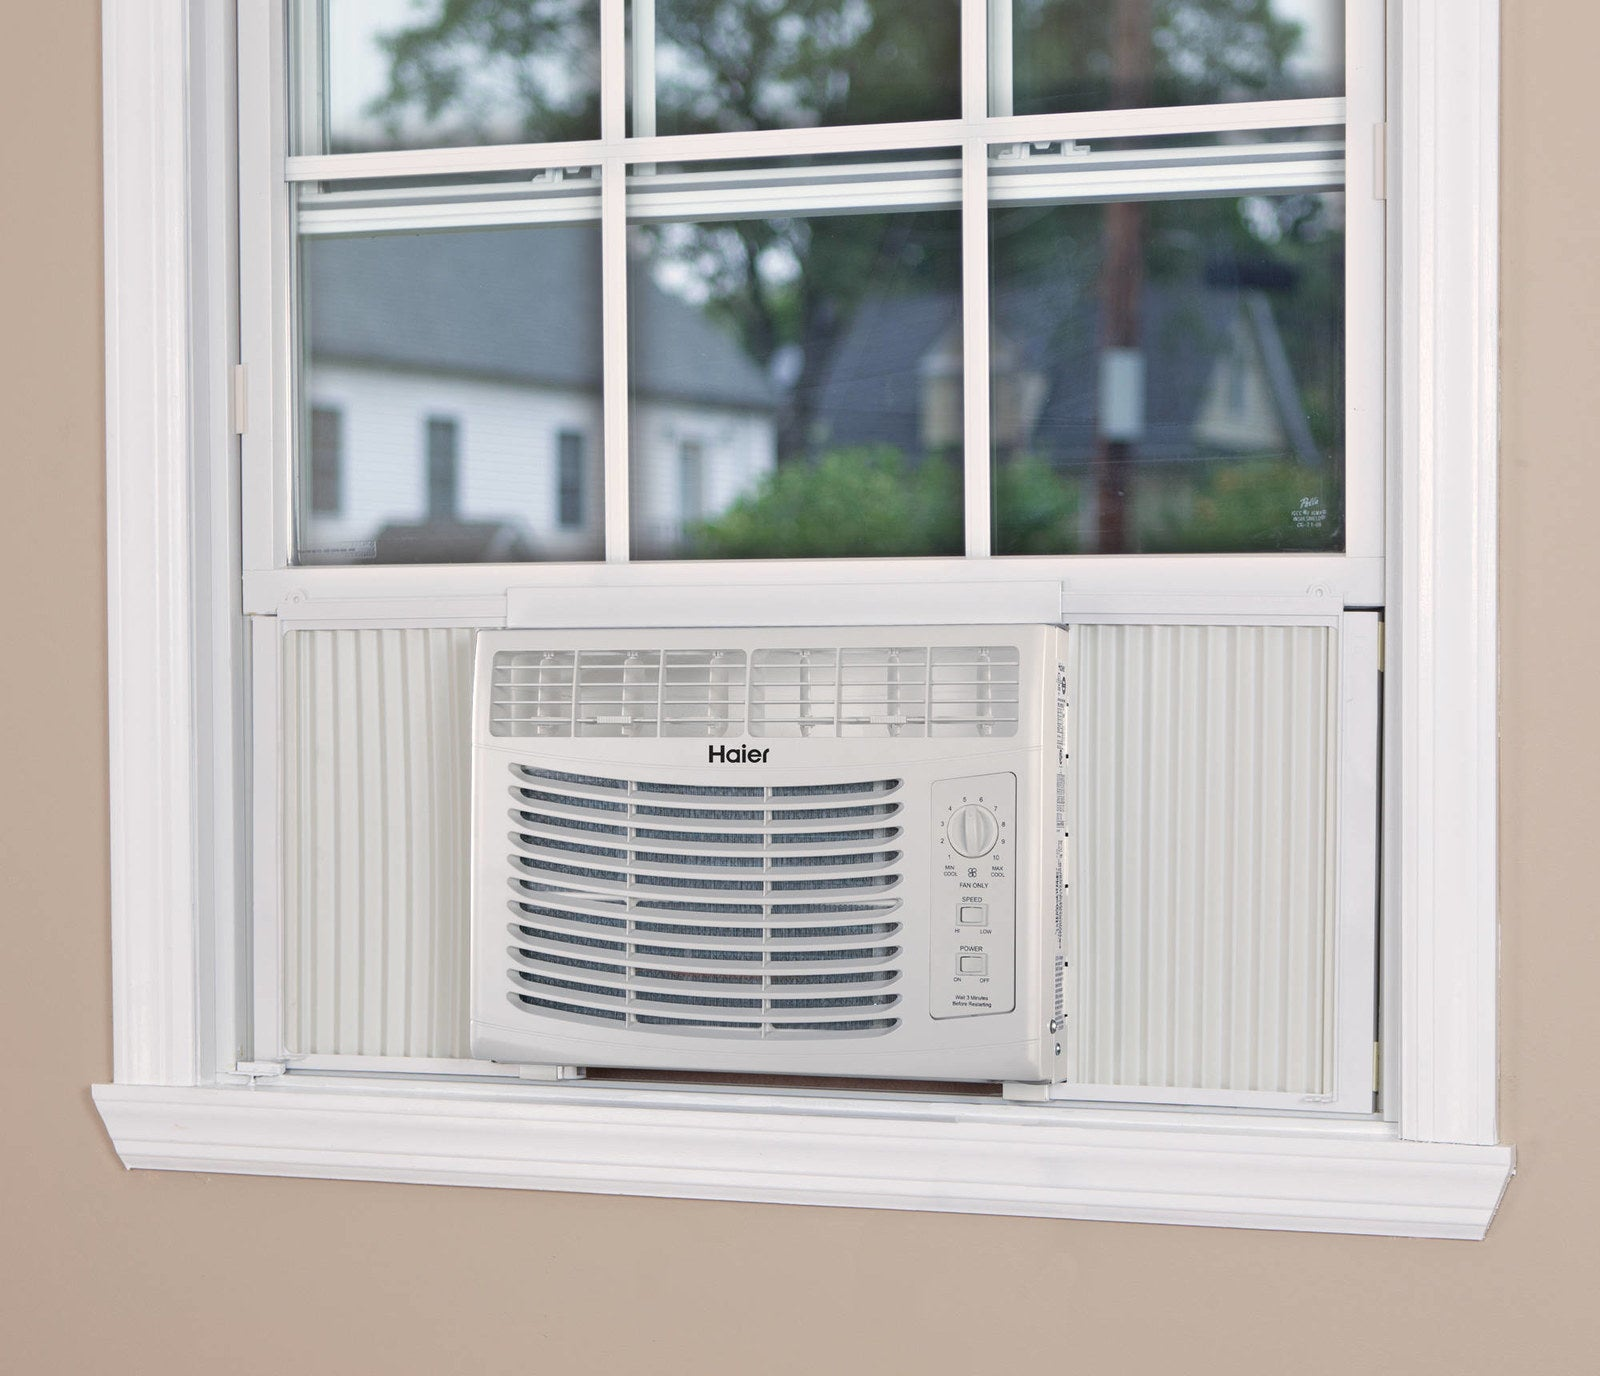 Haier window AC